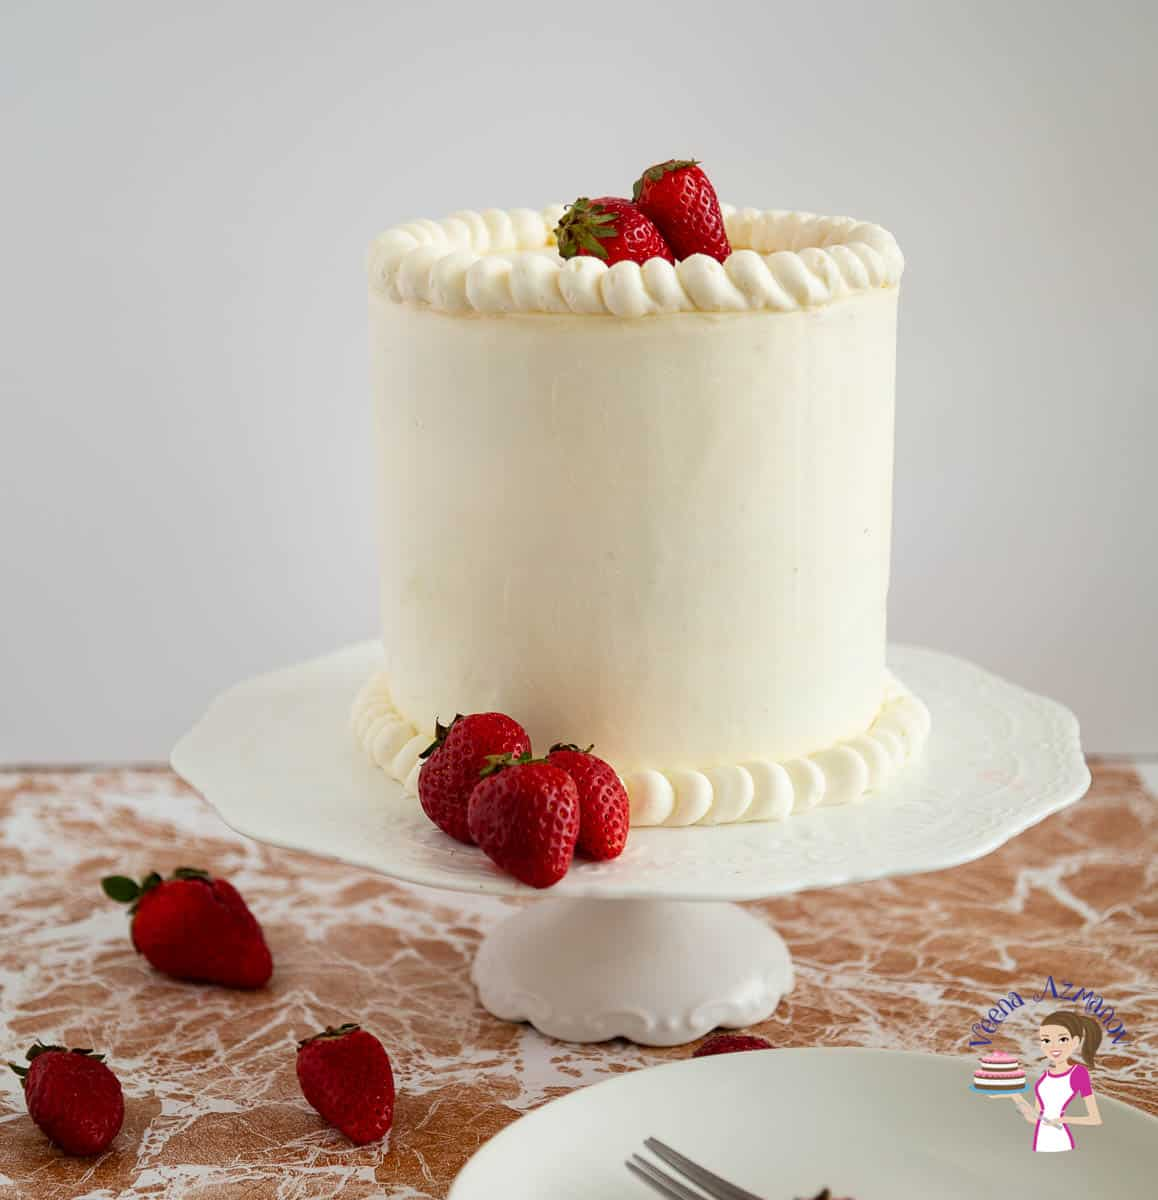 A frosted cake on a cake stand with fresh strawberries